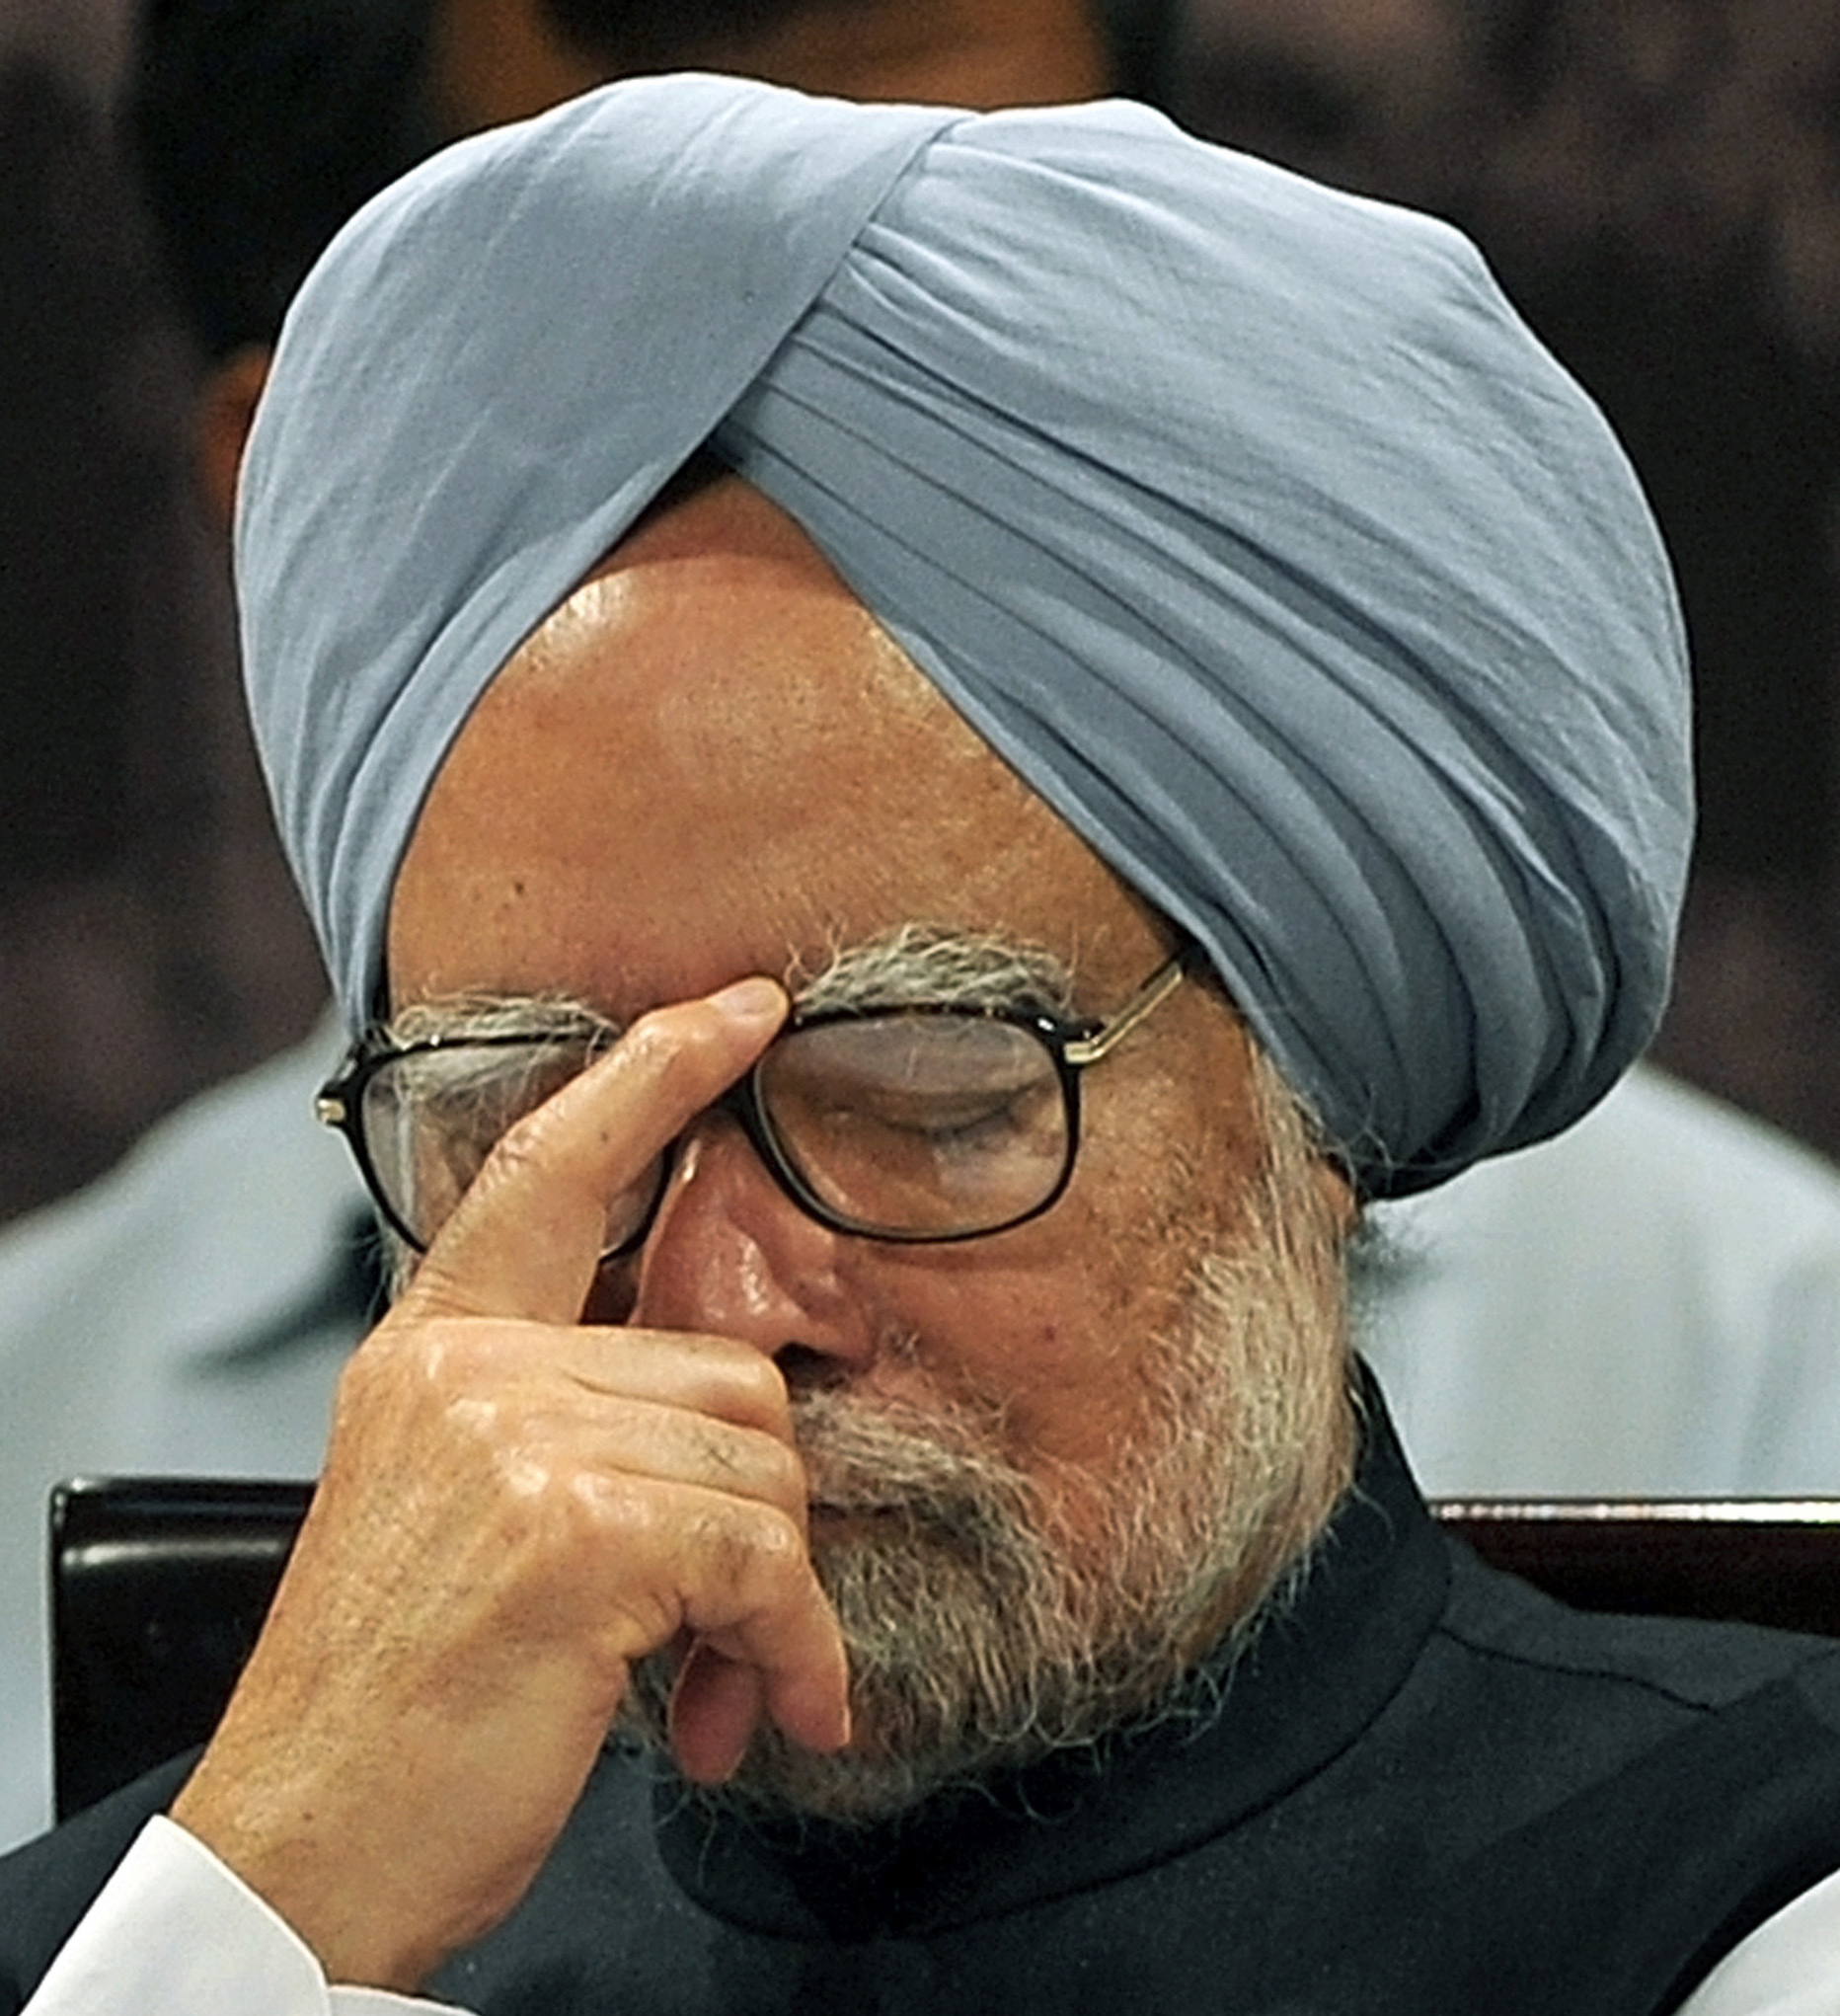 Manmohan Singh: Tempers running high.